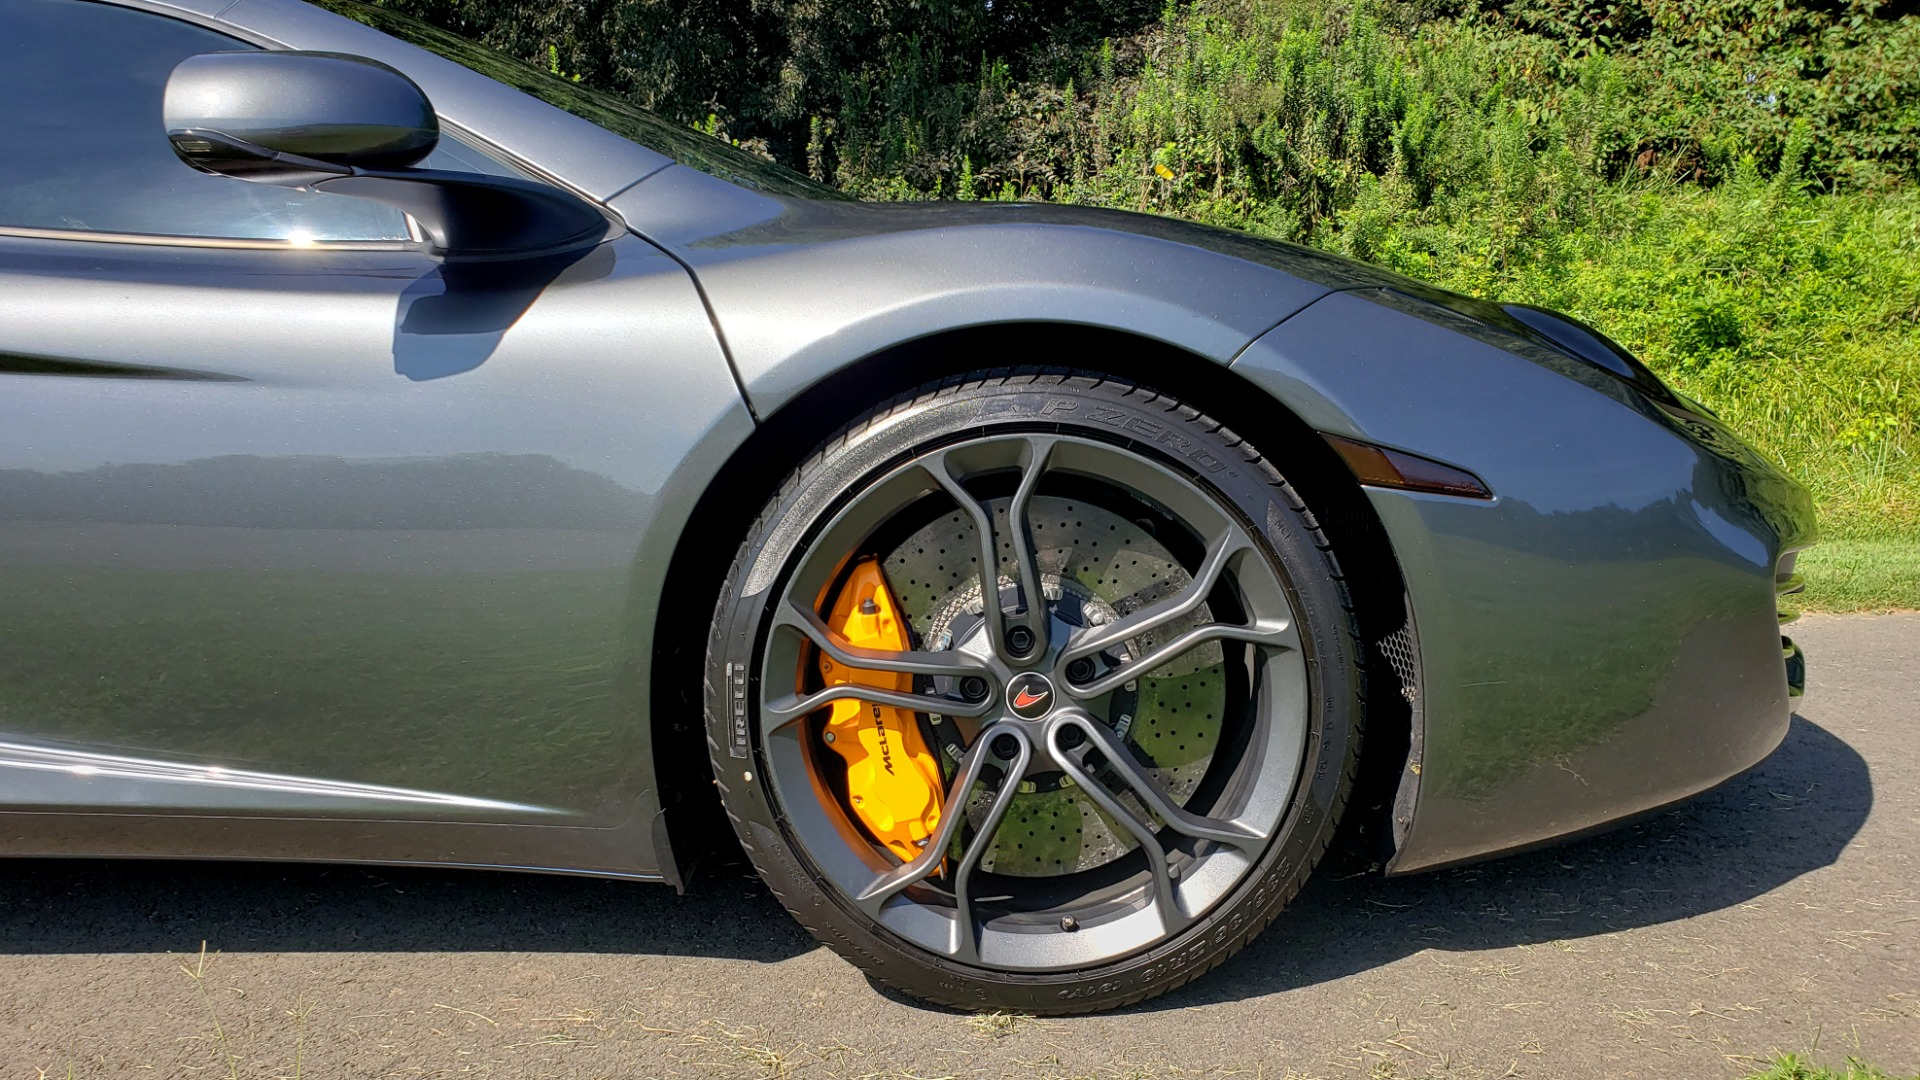 Used 2012 McLaren MP4-12C COUPE / 3.8 L V8 592HP / AUTO / NAV / CCB / LOW MILES for sale $97,999 at Formula Imports in Charlotte NC 28227 95